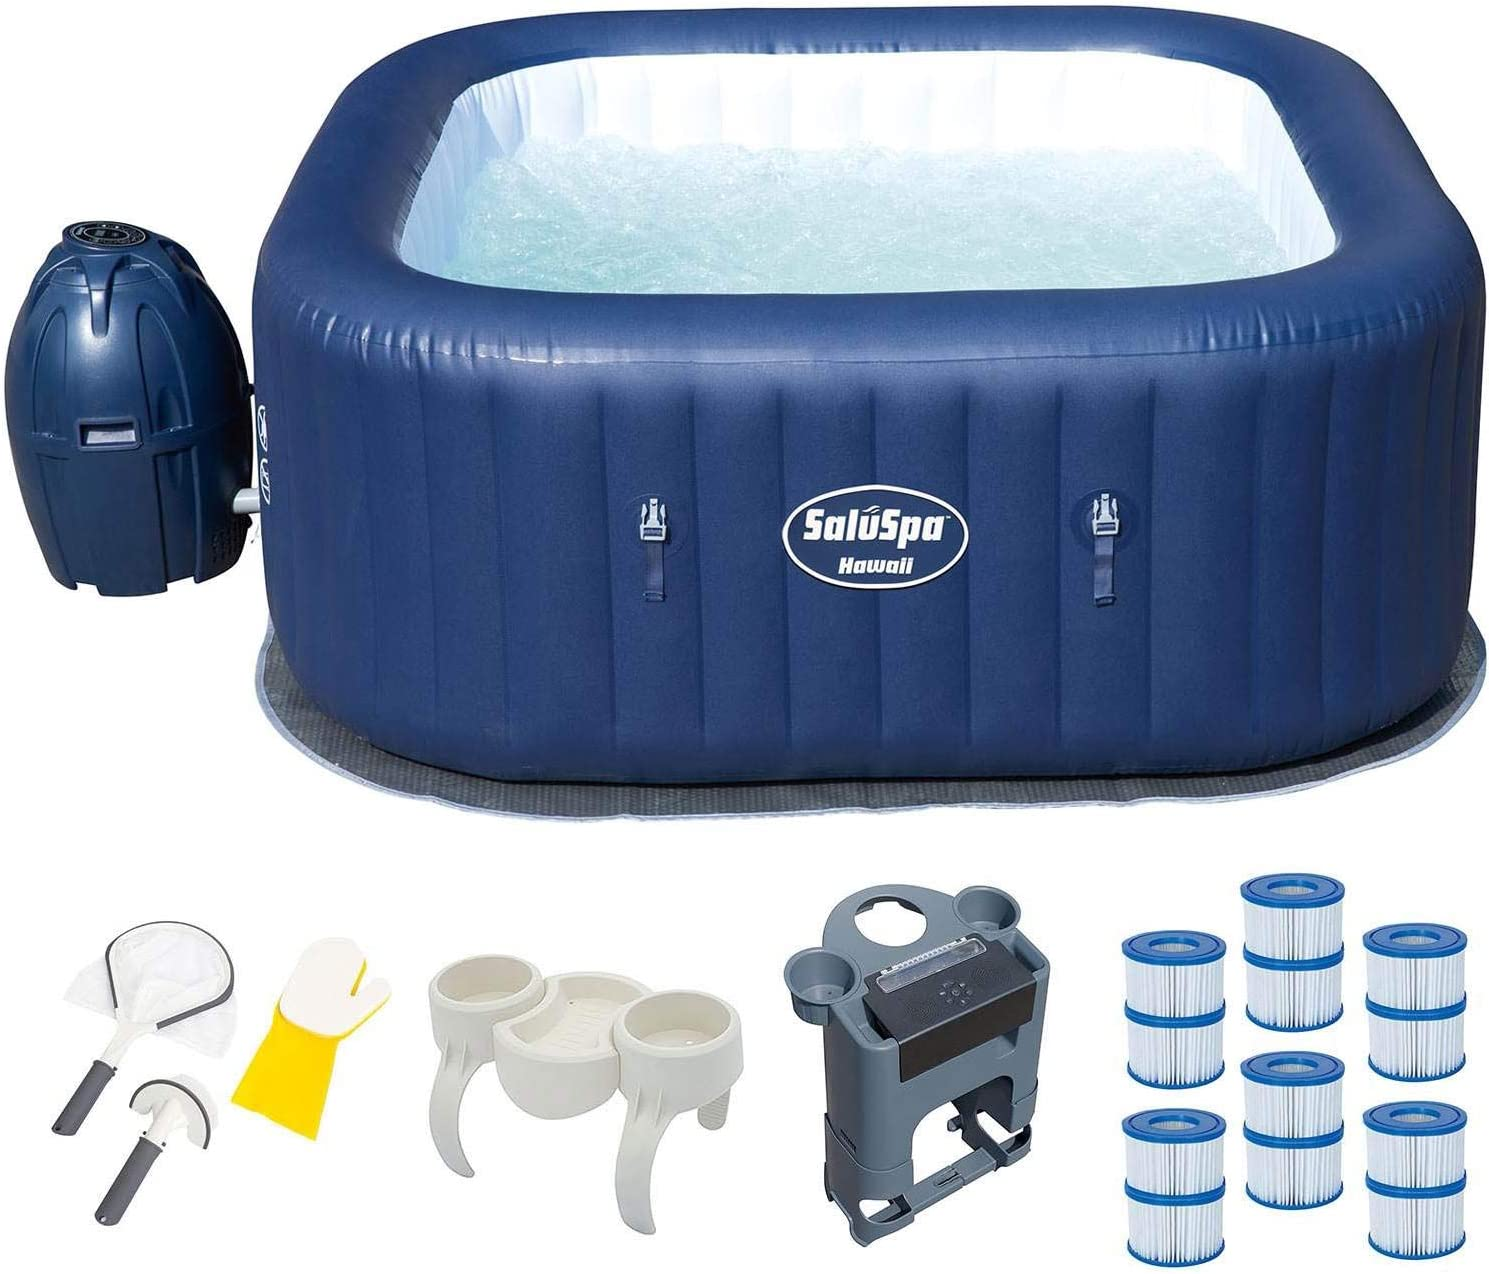 Bestway 6 Person Inflatable Hot Tub + Music Center + 6 Filters + Cleaning Set